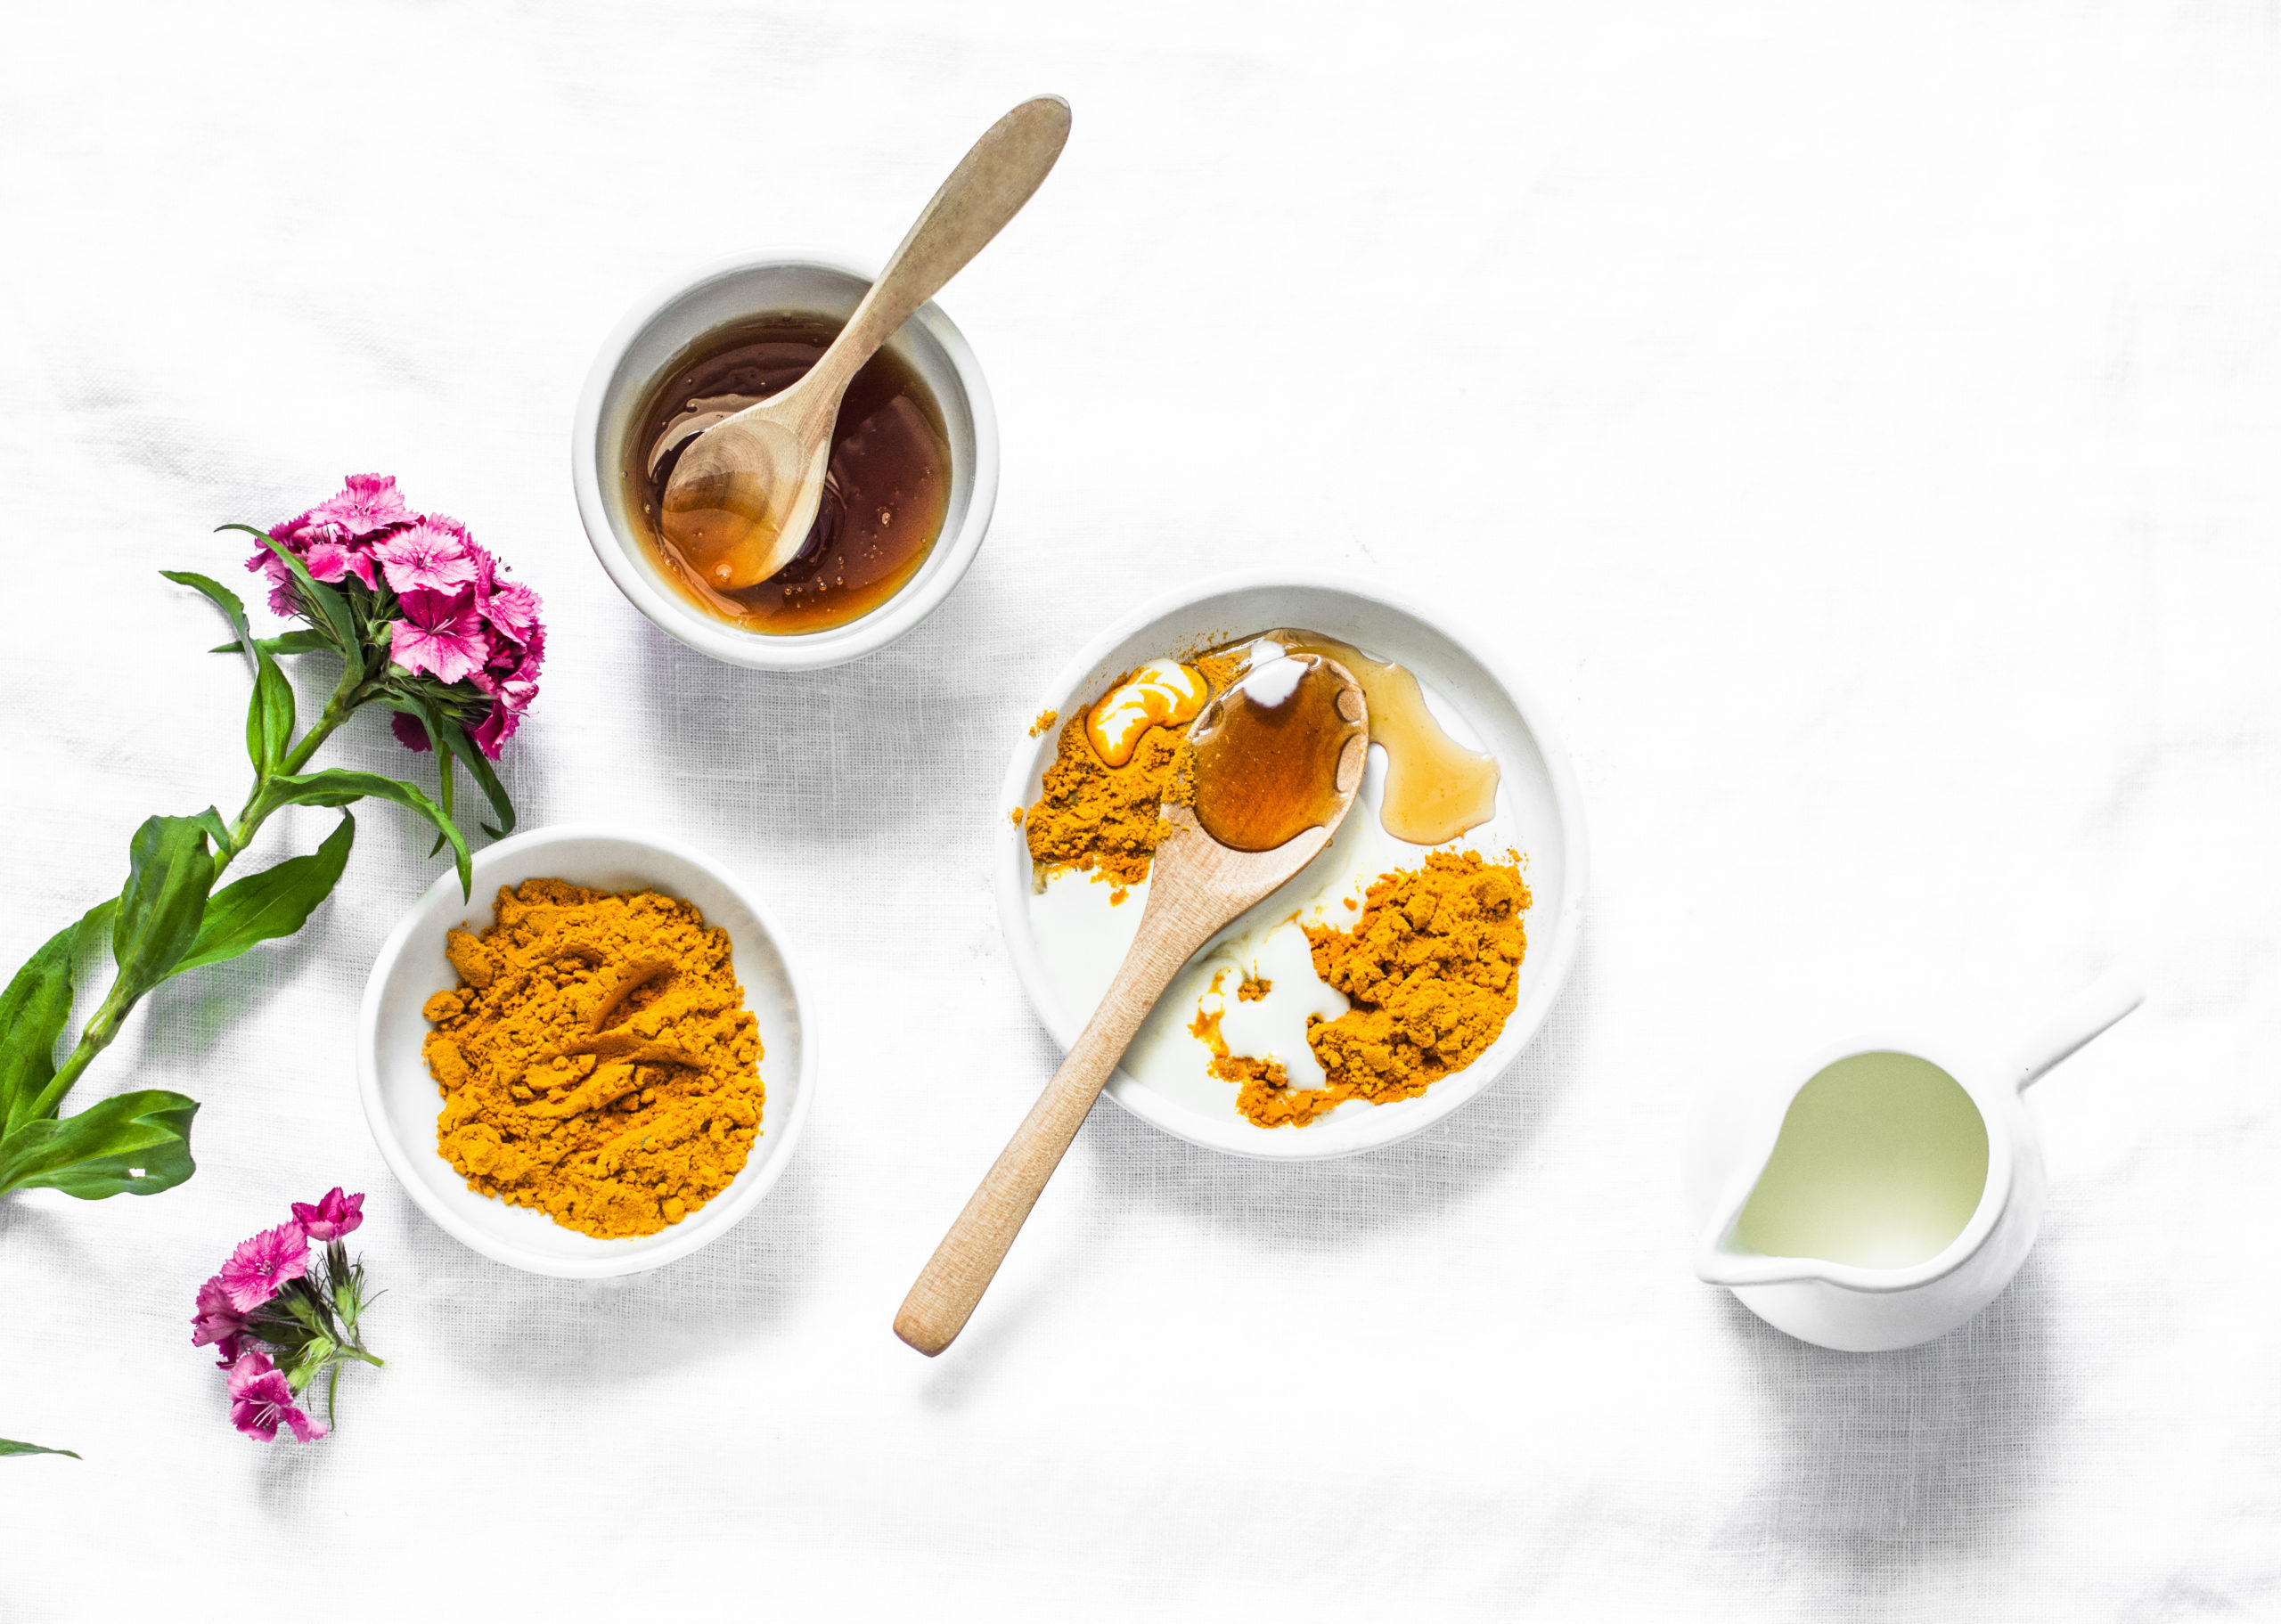 Turmeric, honey, coconut milk face mask. Homemade ingredients beauty products on a light background, top view. Beauty, skin care concept